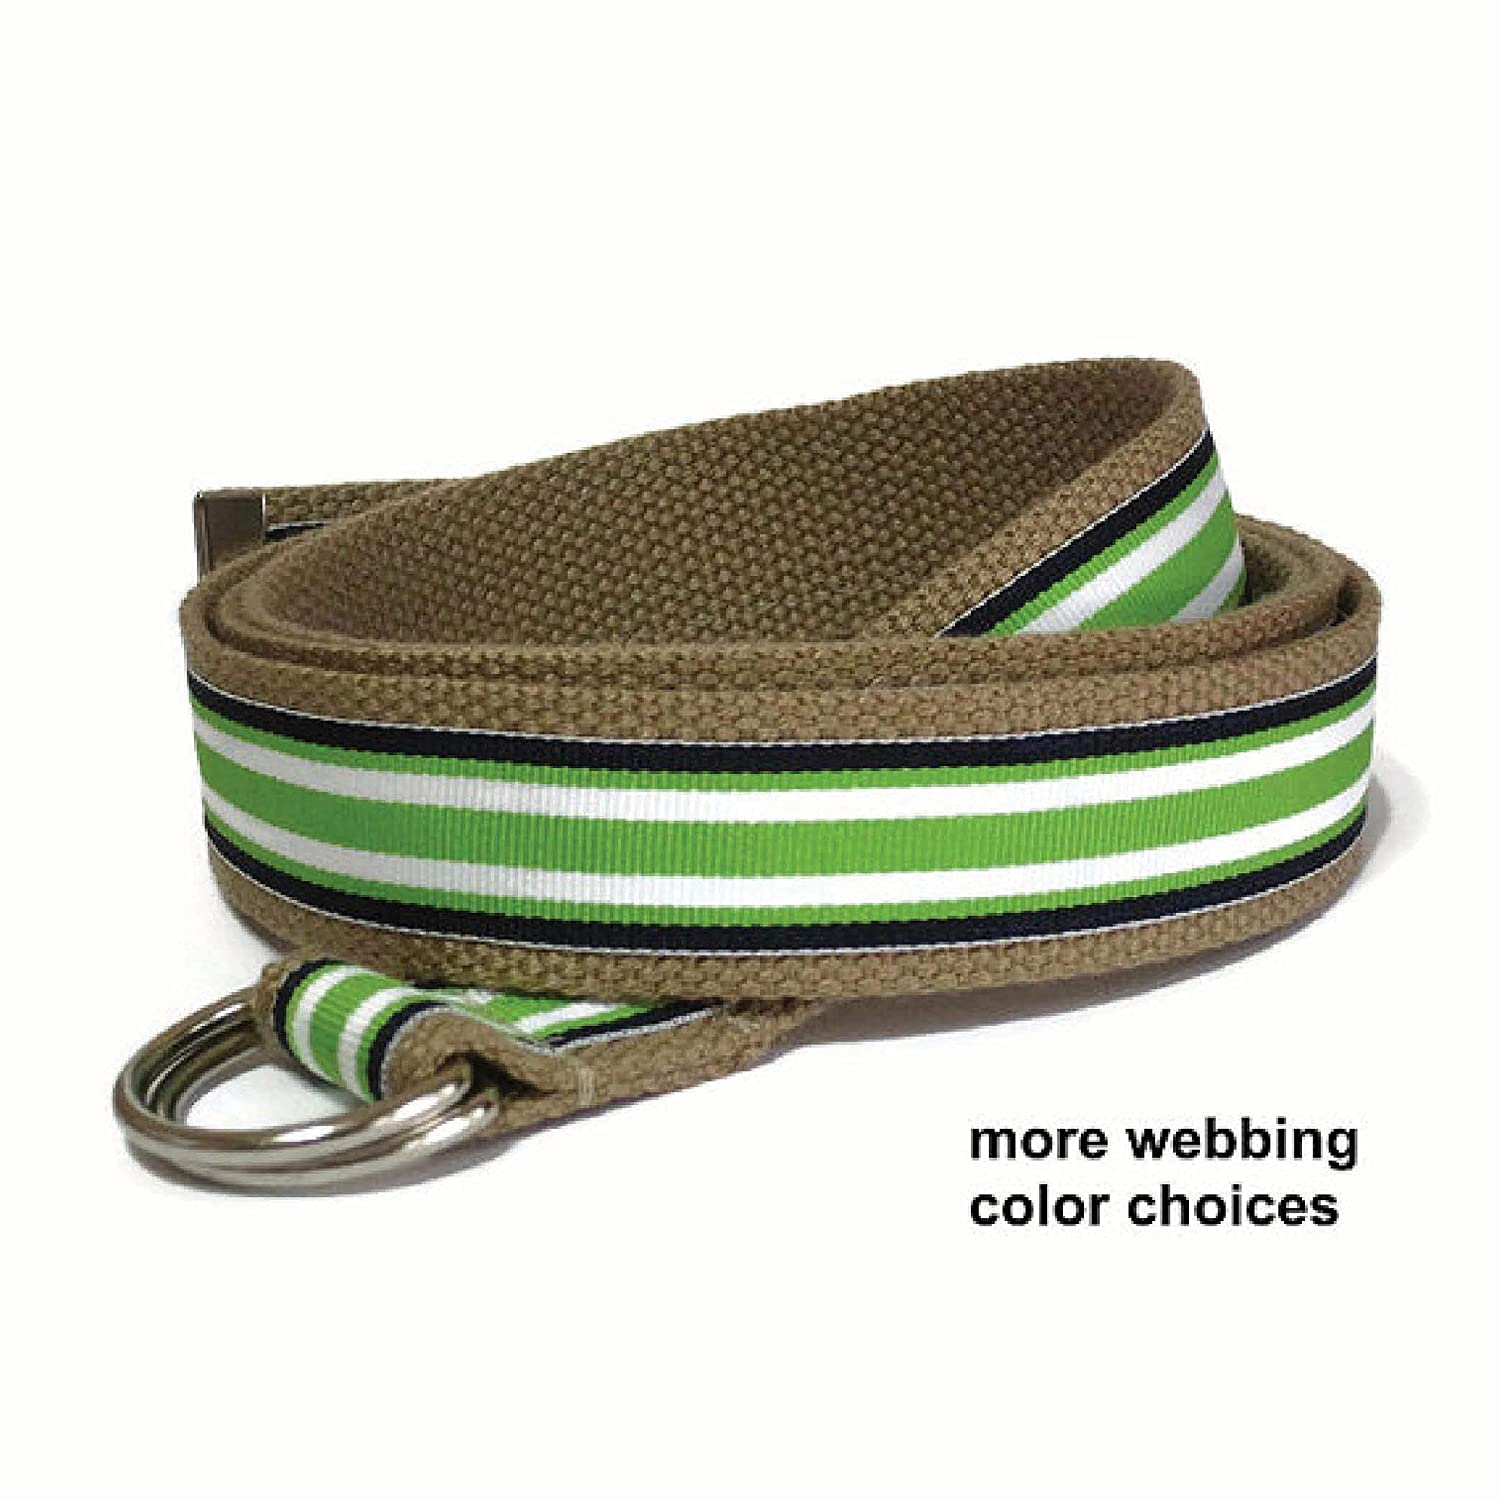 Mens Canvas Belt/Striped Ribbon Belt/Blue and Green D-Ring Belt Preppy Webbing Belt for boys teens men and Big & Tall (Surfboard Stripe)